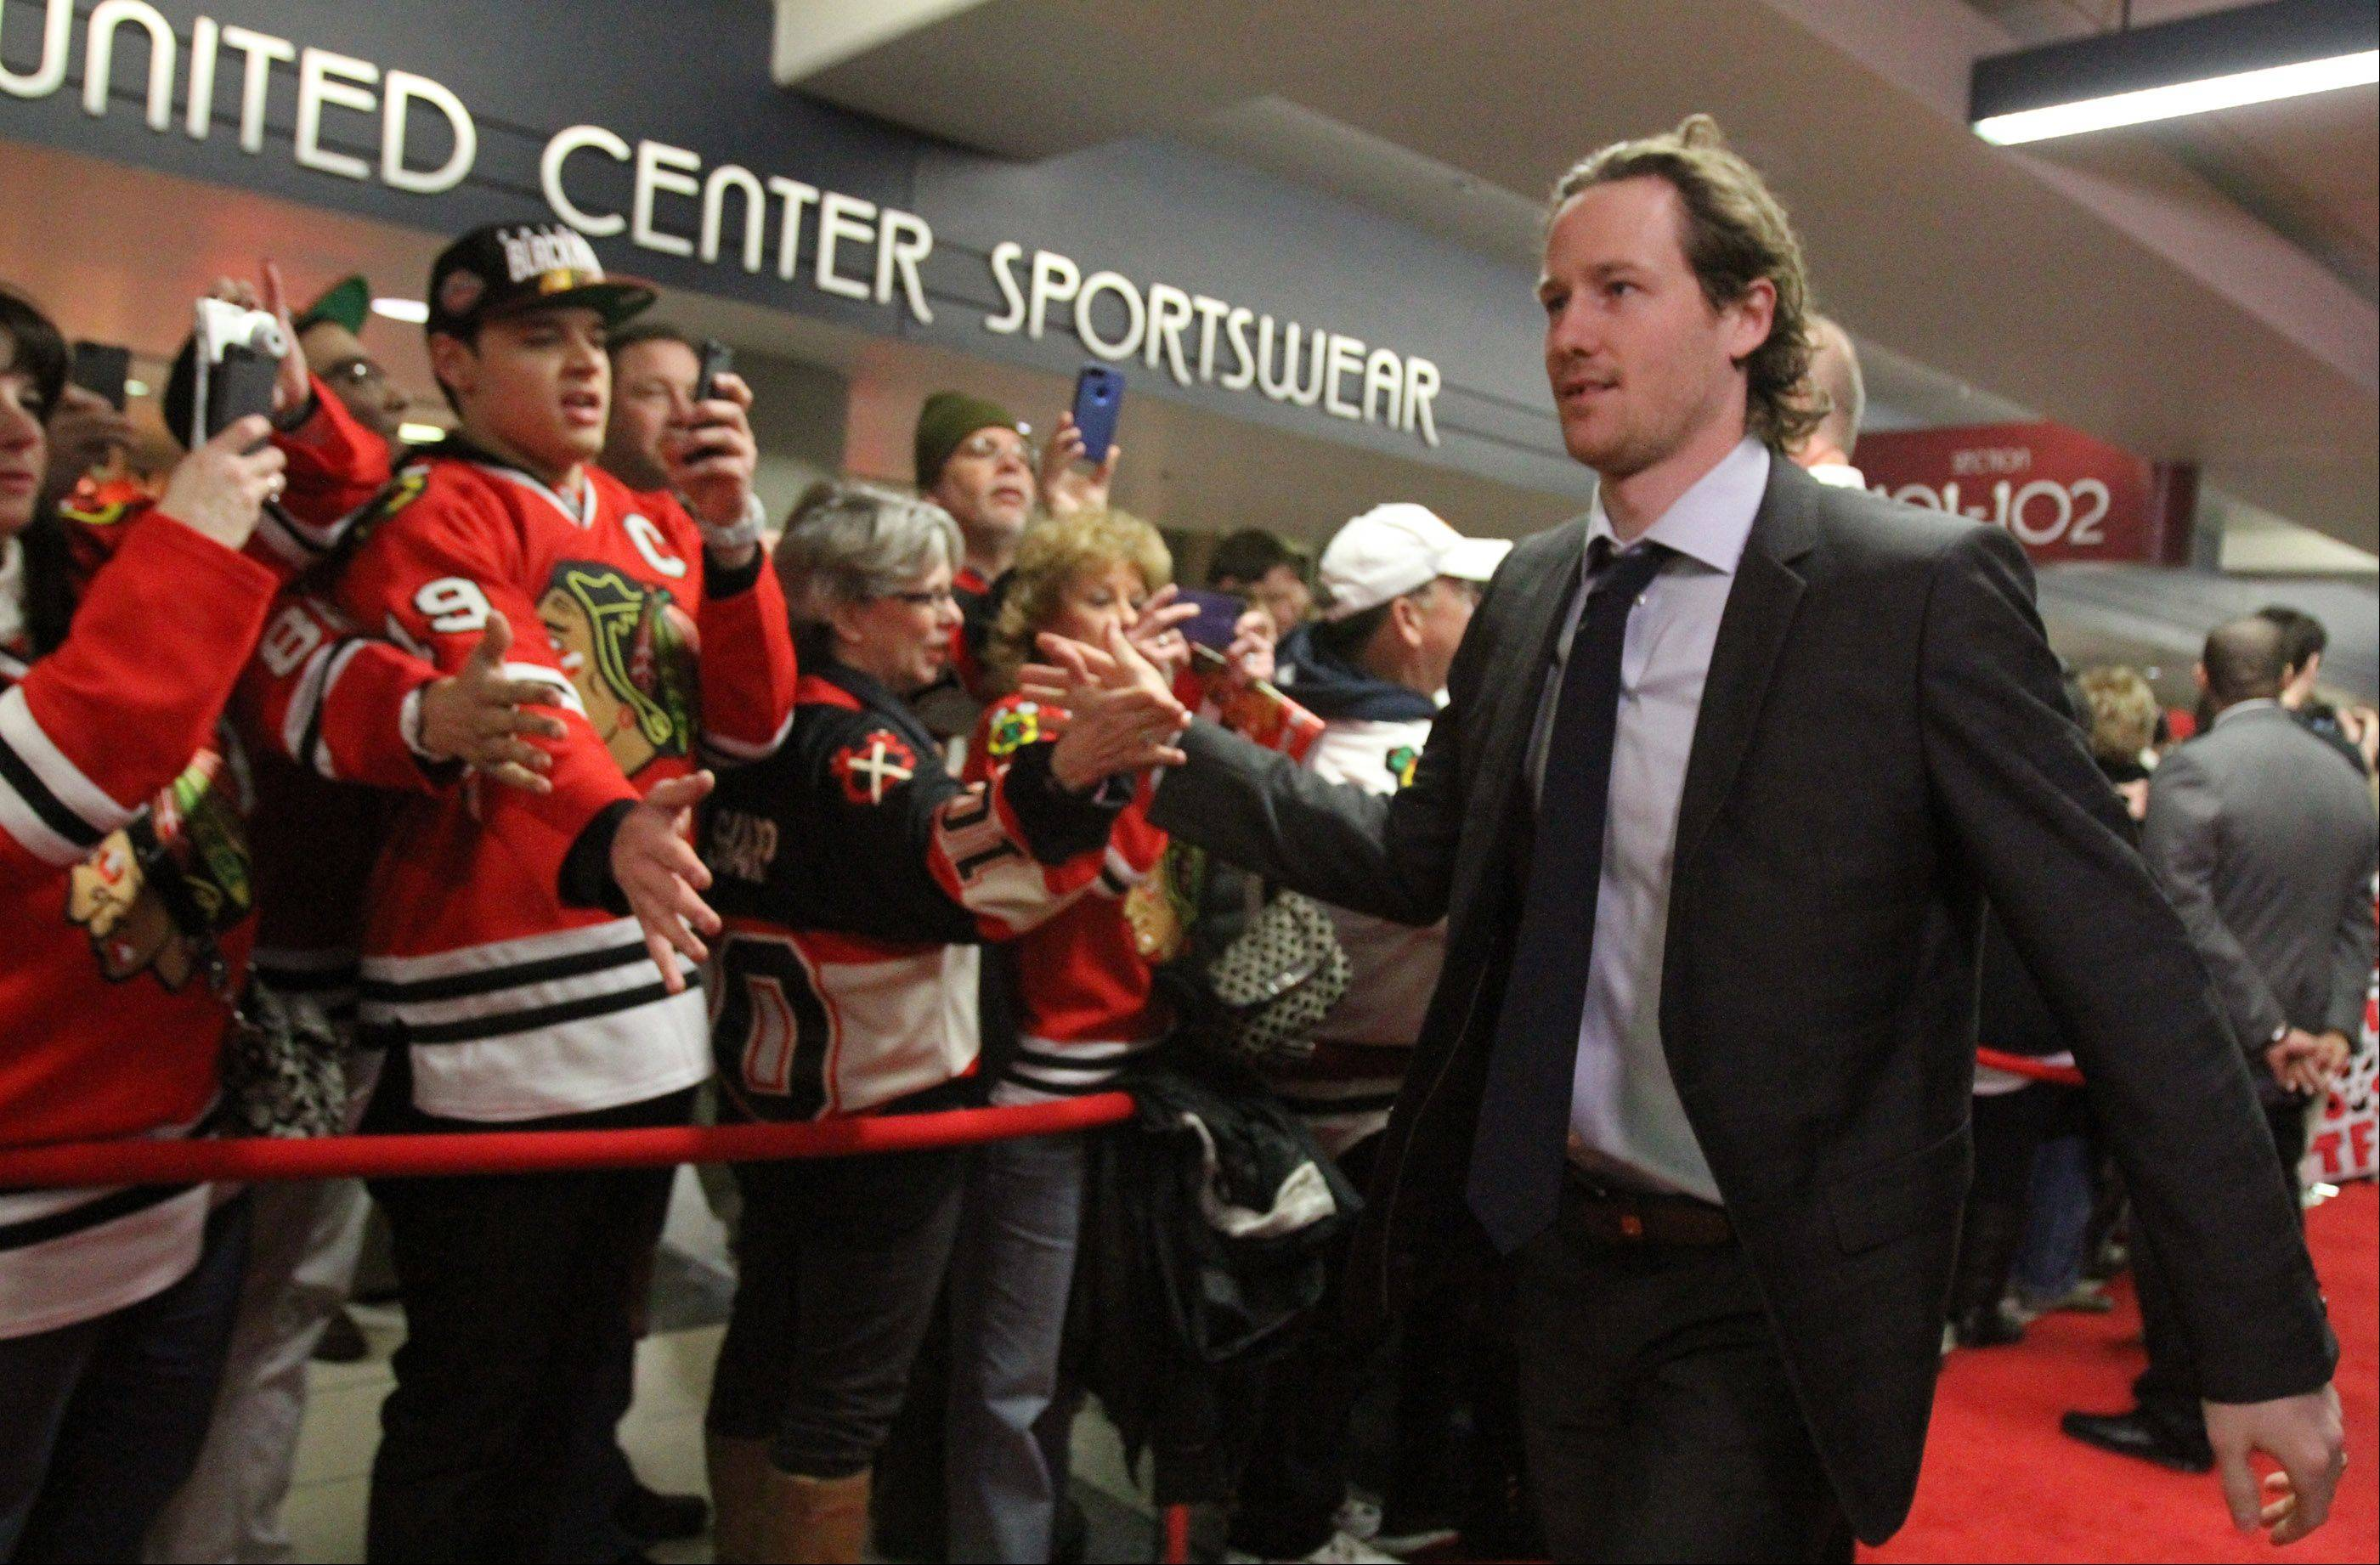 Chicago Blackhawks defenseman Duncan Keith high-fives fans at the team's red carpet event before the home opener.